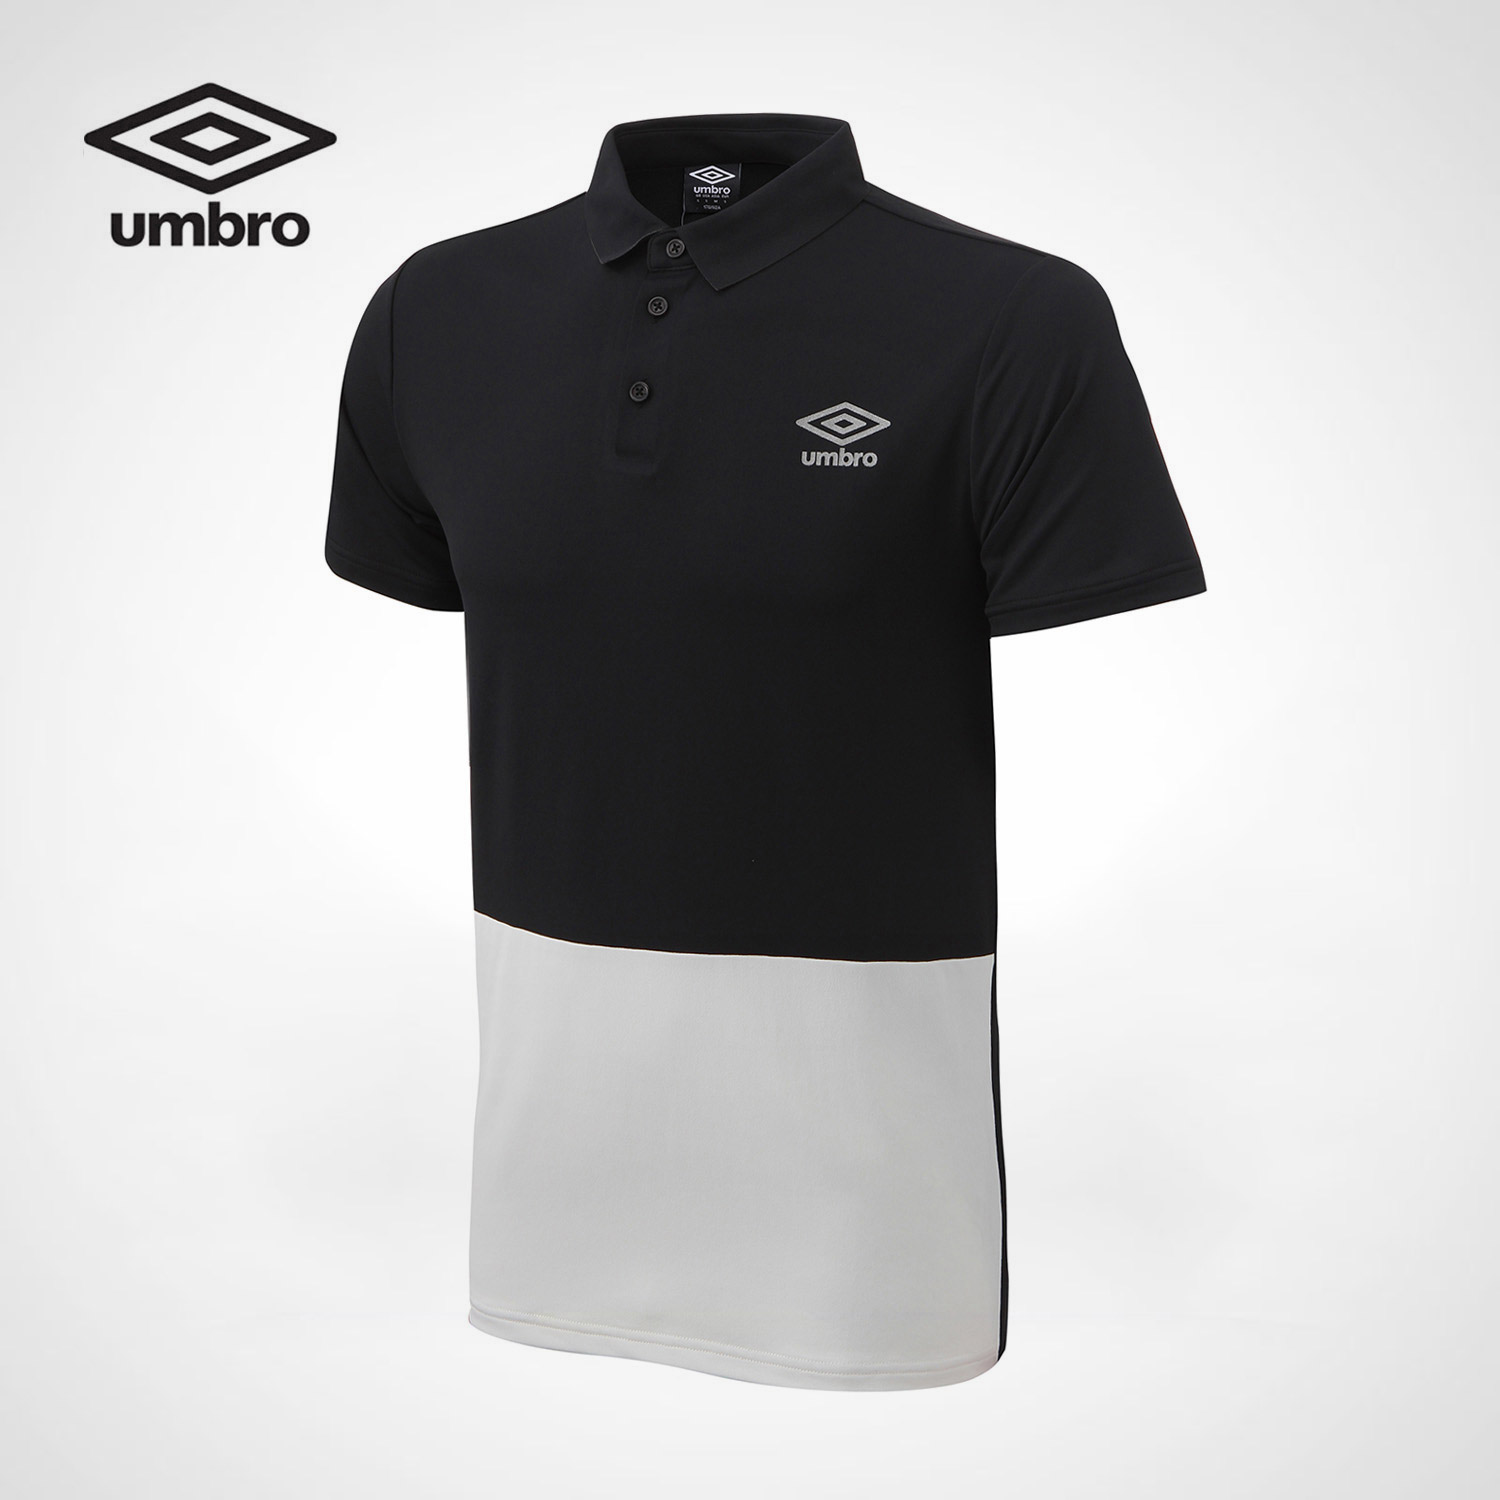 Umbro 2017 New Men Sports Short Sleeved Polo Sweater POLO Shirt Men Cotton Two-color Spo ...